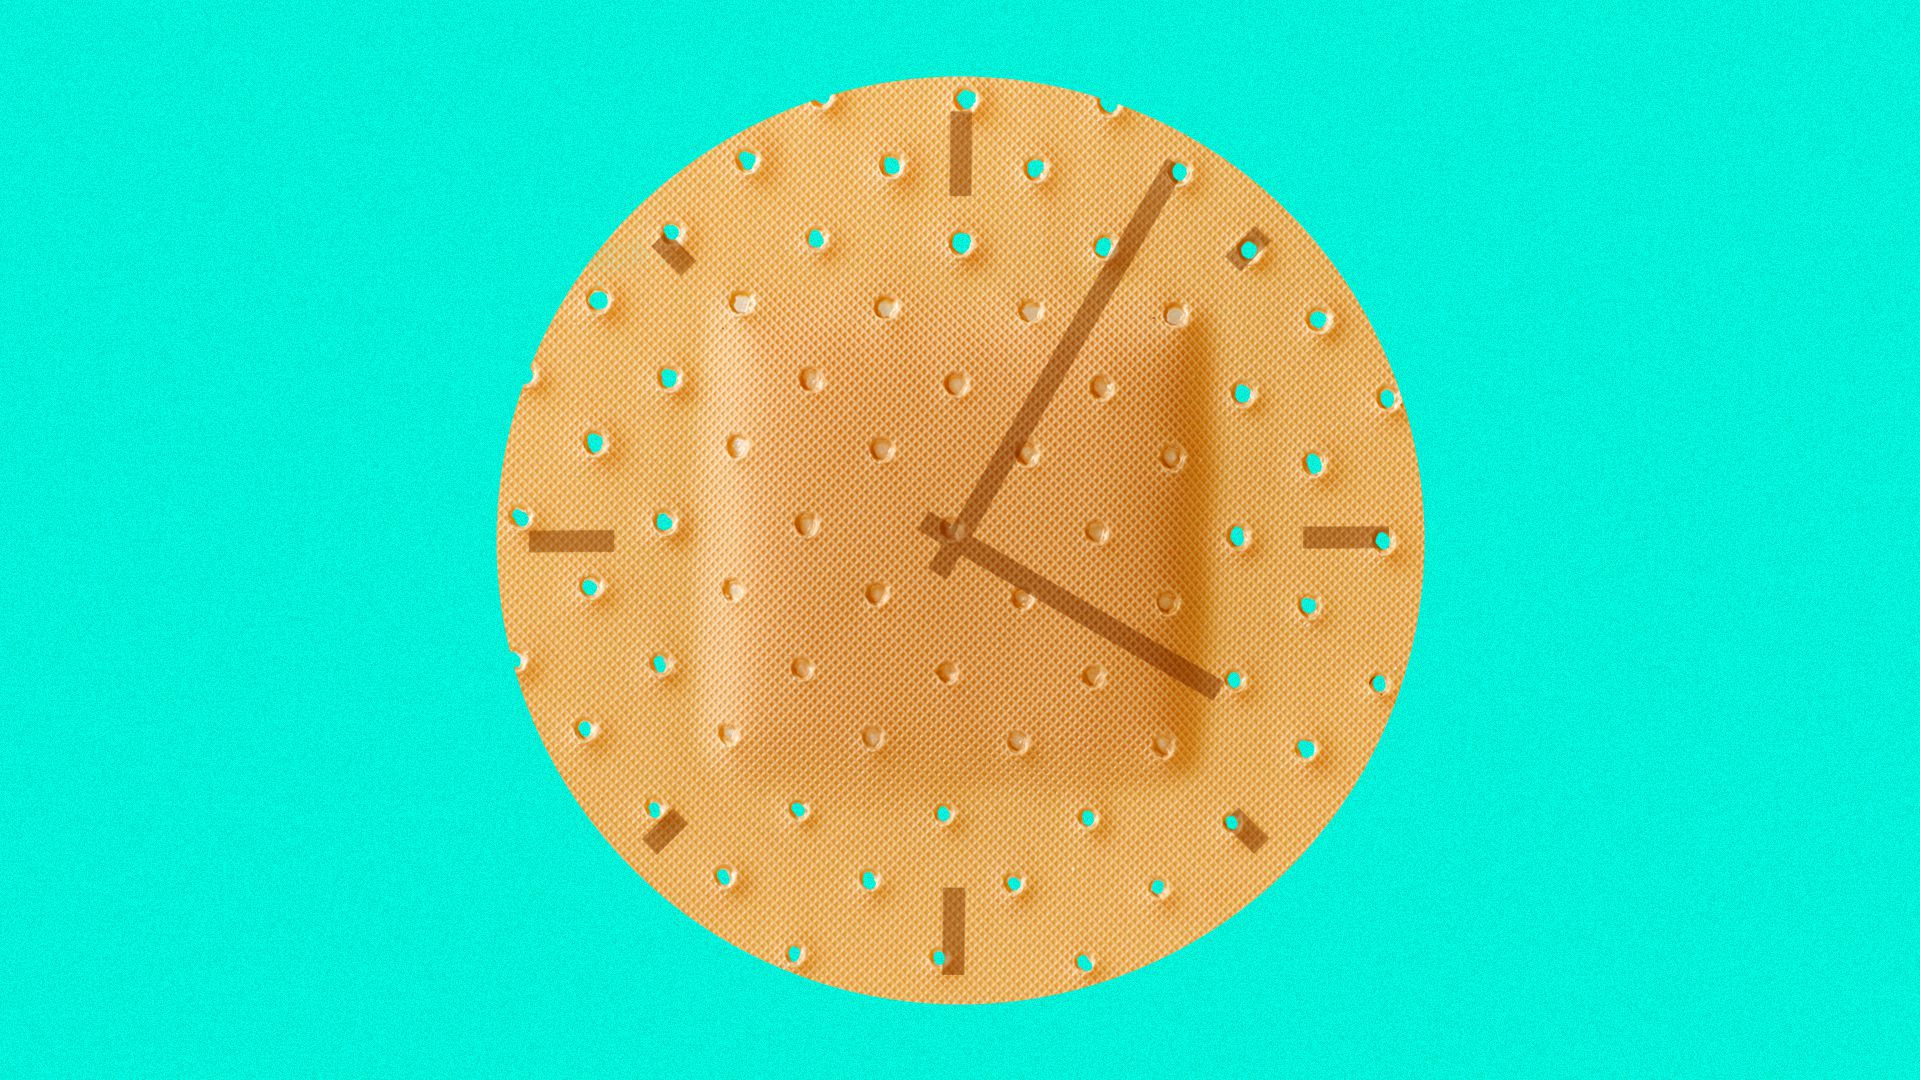 Illustration of a circular bandage with a clock face on it.